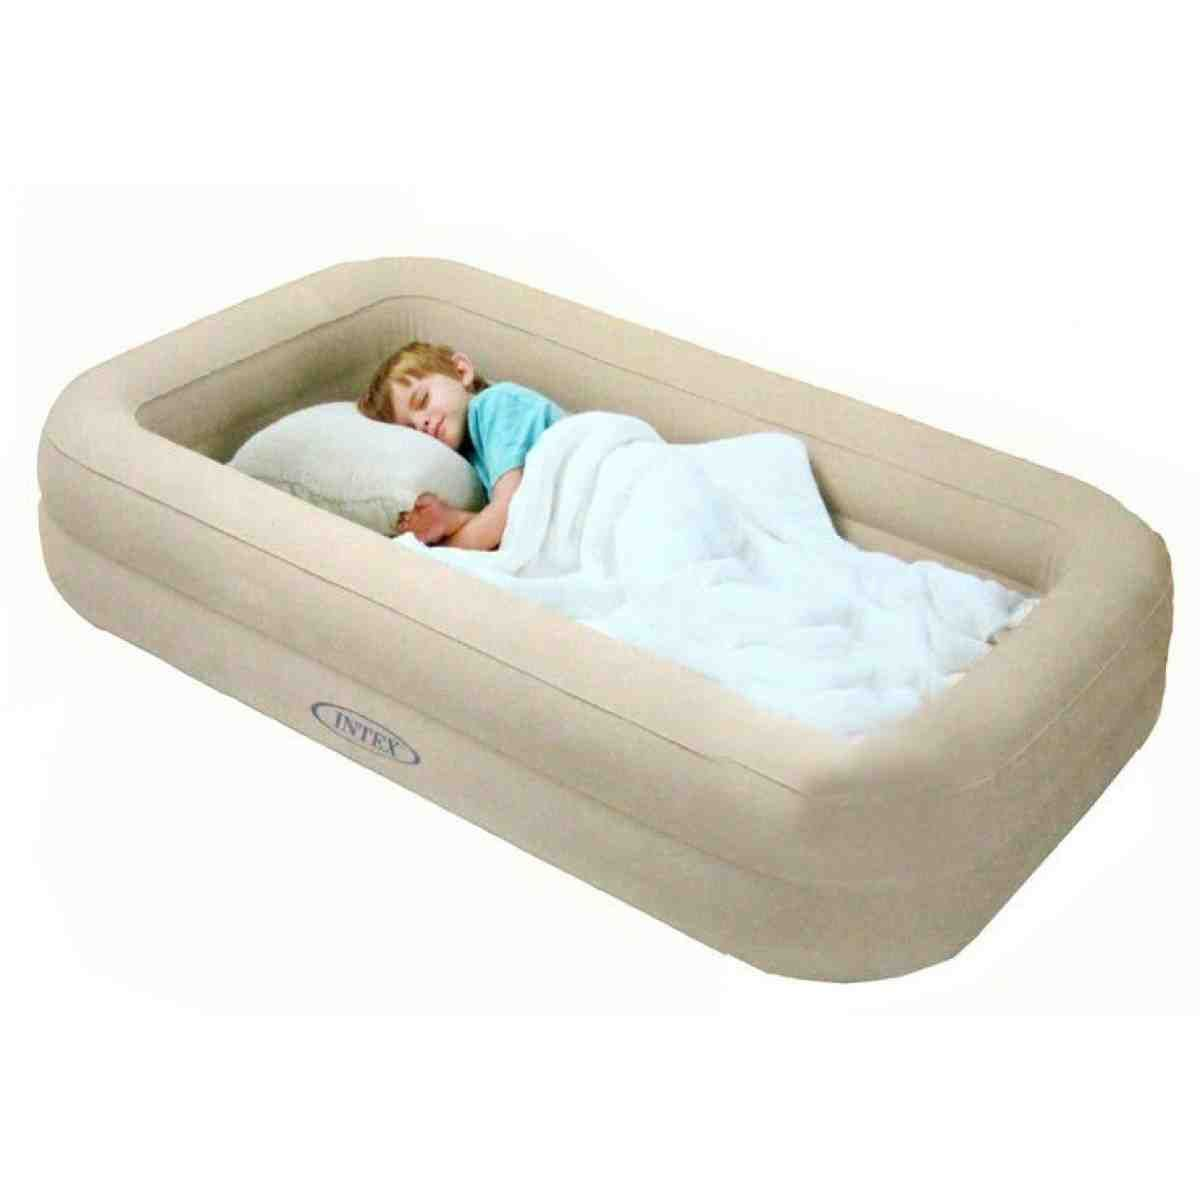 Portable Bed Frame For Air Mattress Portable Toddler Bed Toddler Travel Bed Portable Bed